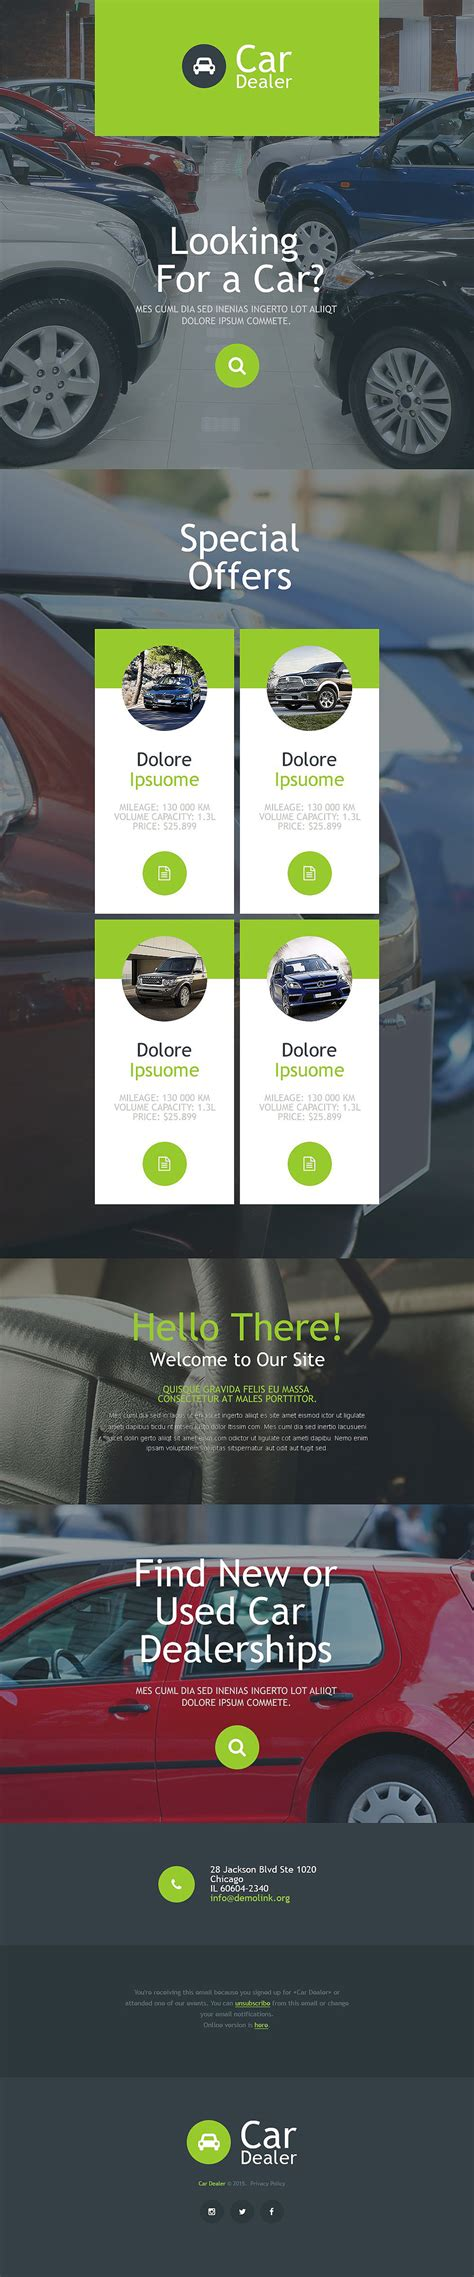 Car Dealer Responsive Newsletter Template 55193 By Wt Newsletter Email Templates Car Dealer Email Templates